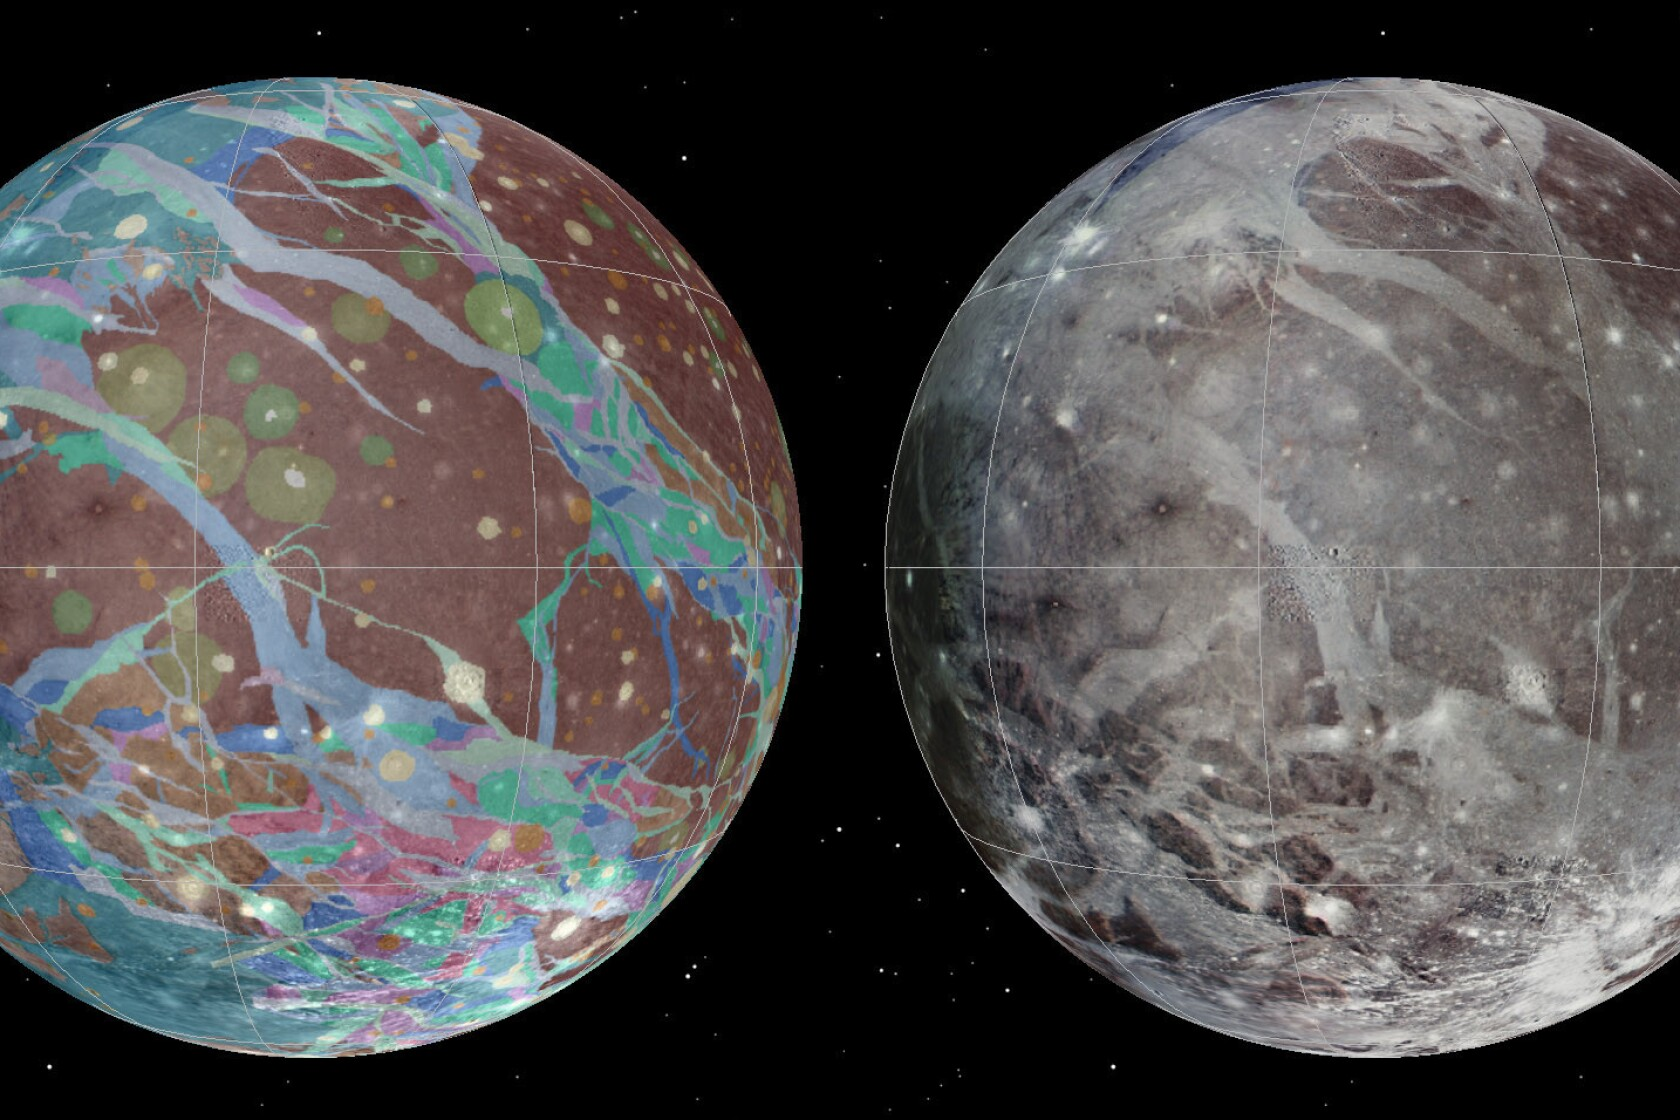 Ganymede mapped: See best map yet of our solar system's ... on freezing moon, satellite map of earth, detailed map of the moon, globes of the moon, old maps of the moon, colonization of the moon, earth orbiting the moon, satelite view from moon, google moon, terrain of the moon, temperature of the moon, atlas of the moon, labeled map of the moon, inner core of the moon, satellite engineer, gps of the moon, far side of the moon, satellite map of california, space maps of the moon, live feed of the moon,